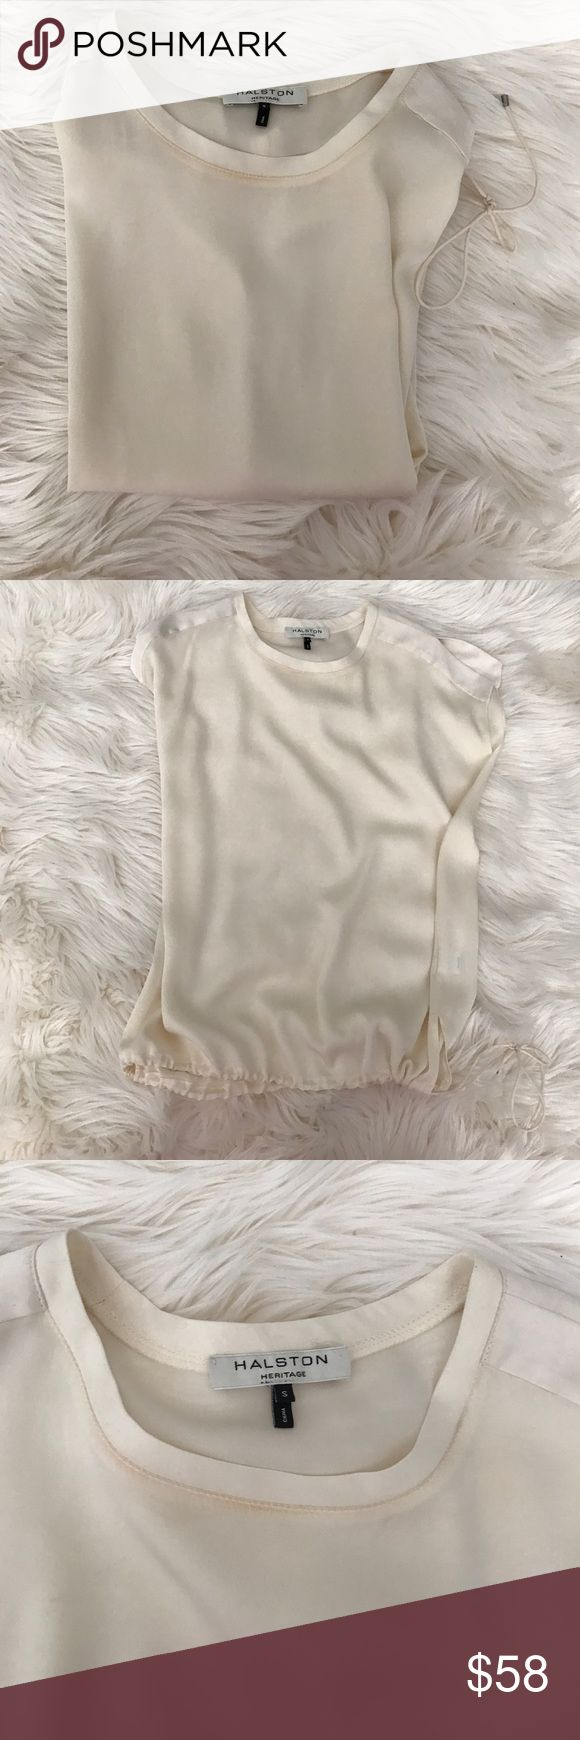 Halston Heritage Silk Blouse Halston Heritage Silk Blouse.  Never worn, gorgeous cream silk with drawstring at bottom.  Has some small stains (shown in photos).  Looks like make up stains from a fitting room.  Possibly removed with dry cleaning.  Otherwise perfect! Halston Heritage Tops Blouses